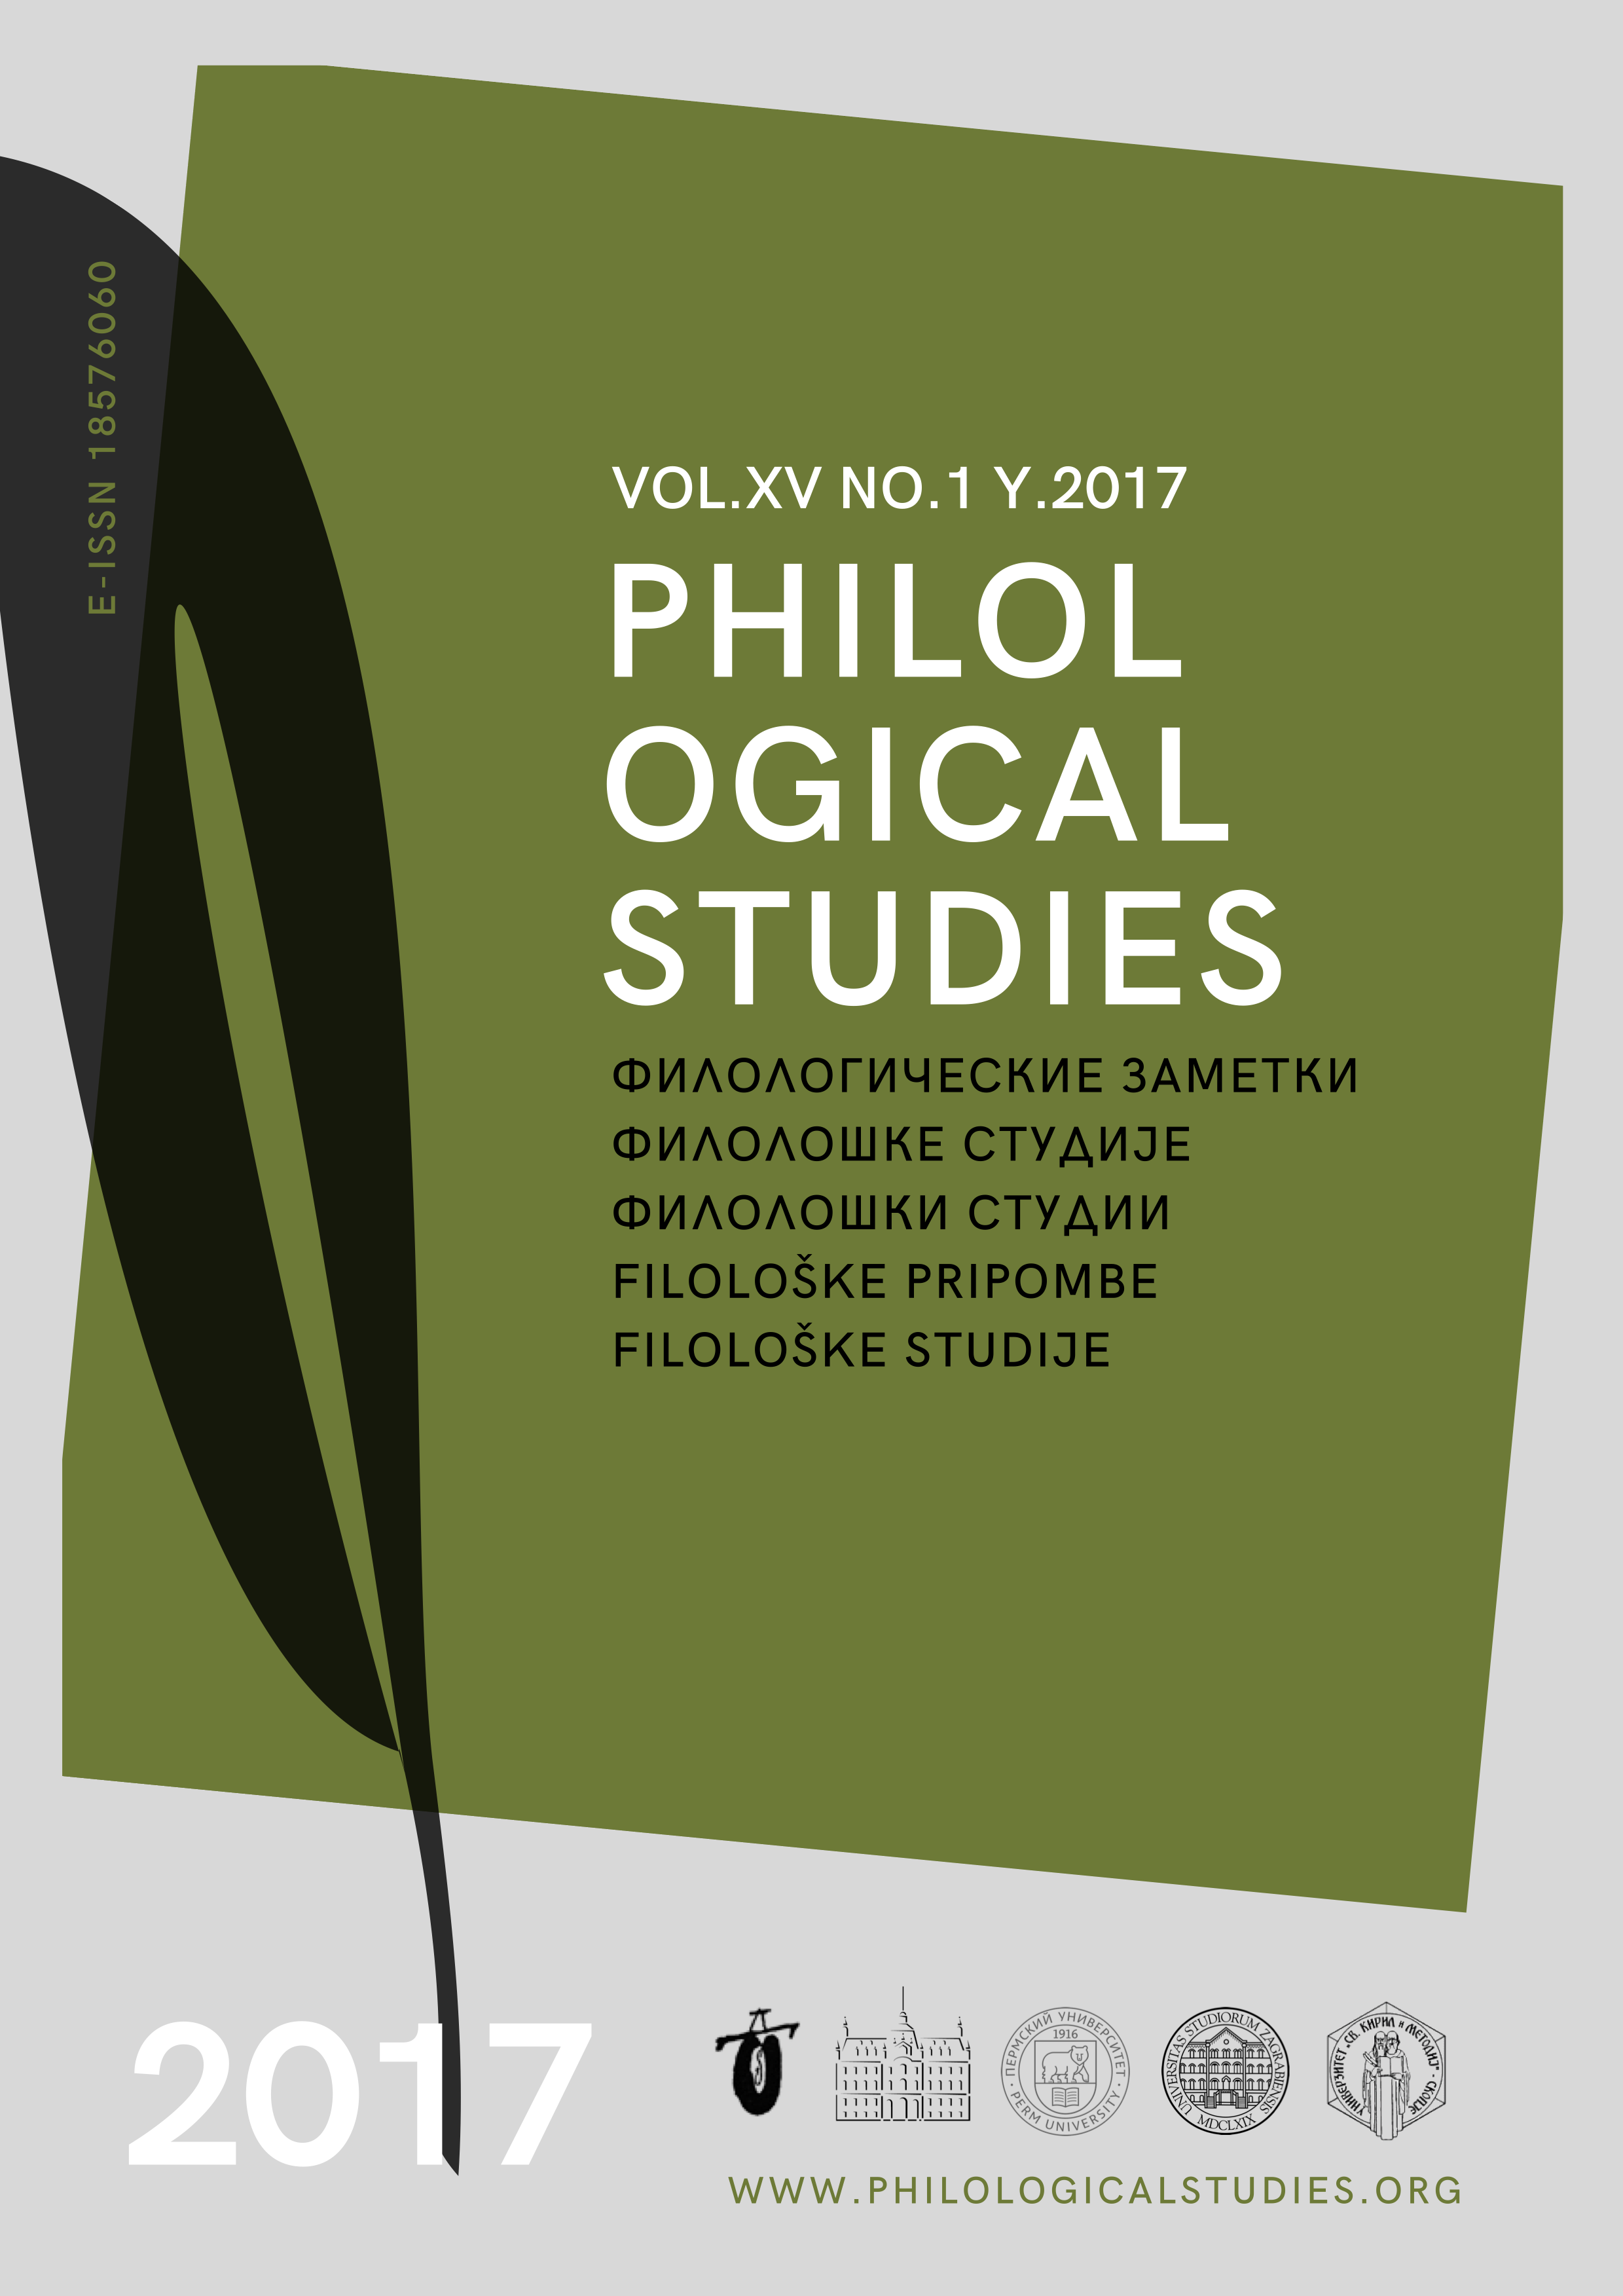 Philological Studies Vol.15 No.1 2017